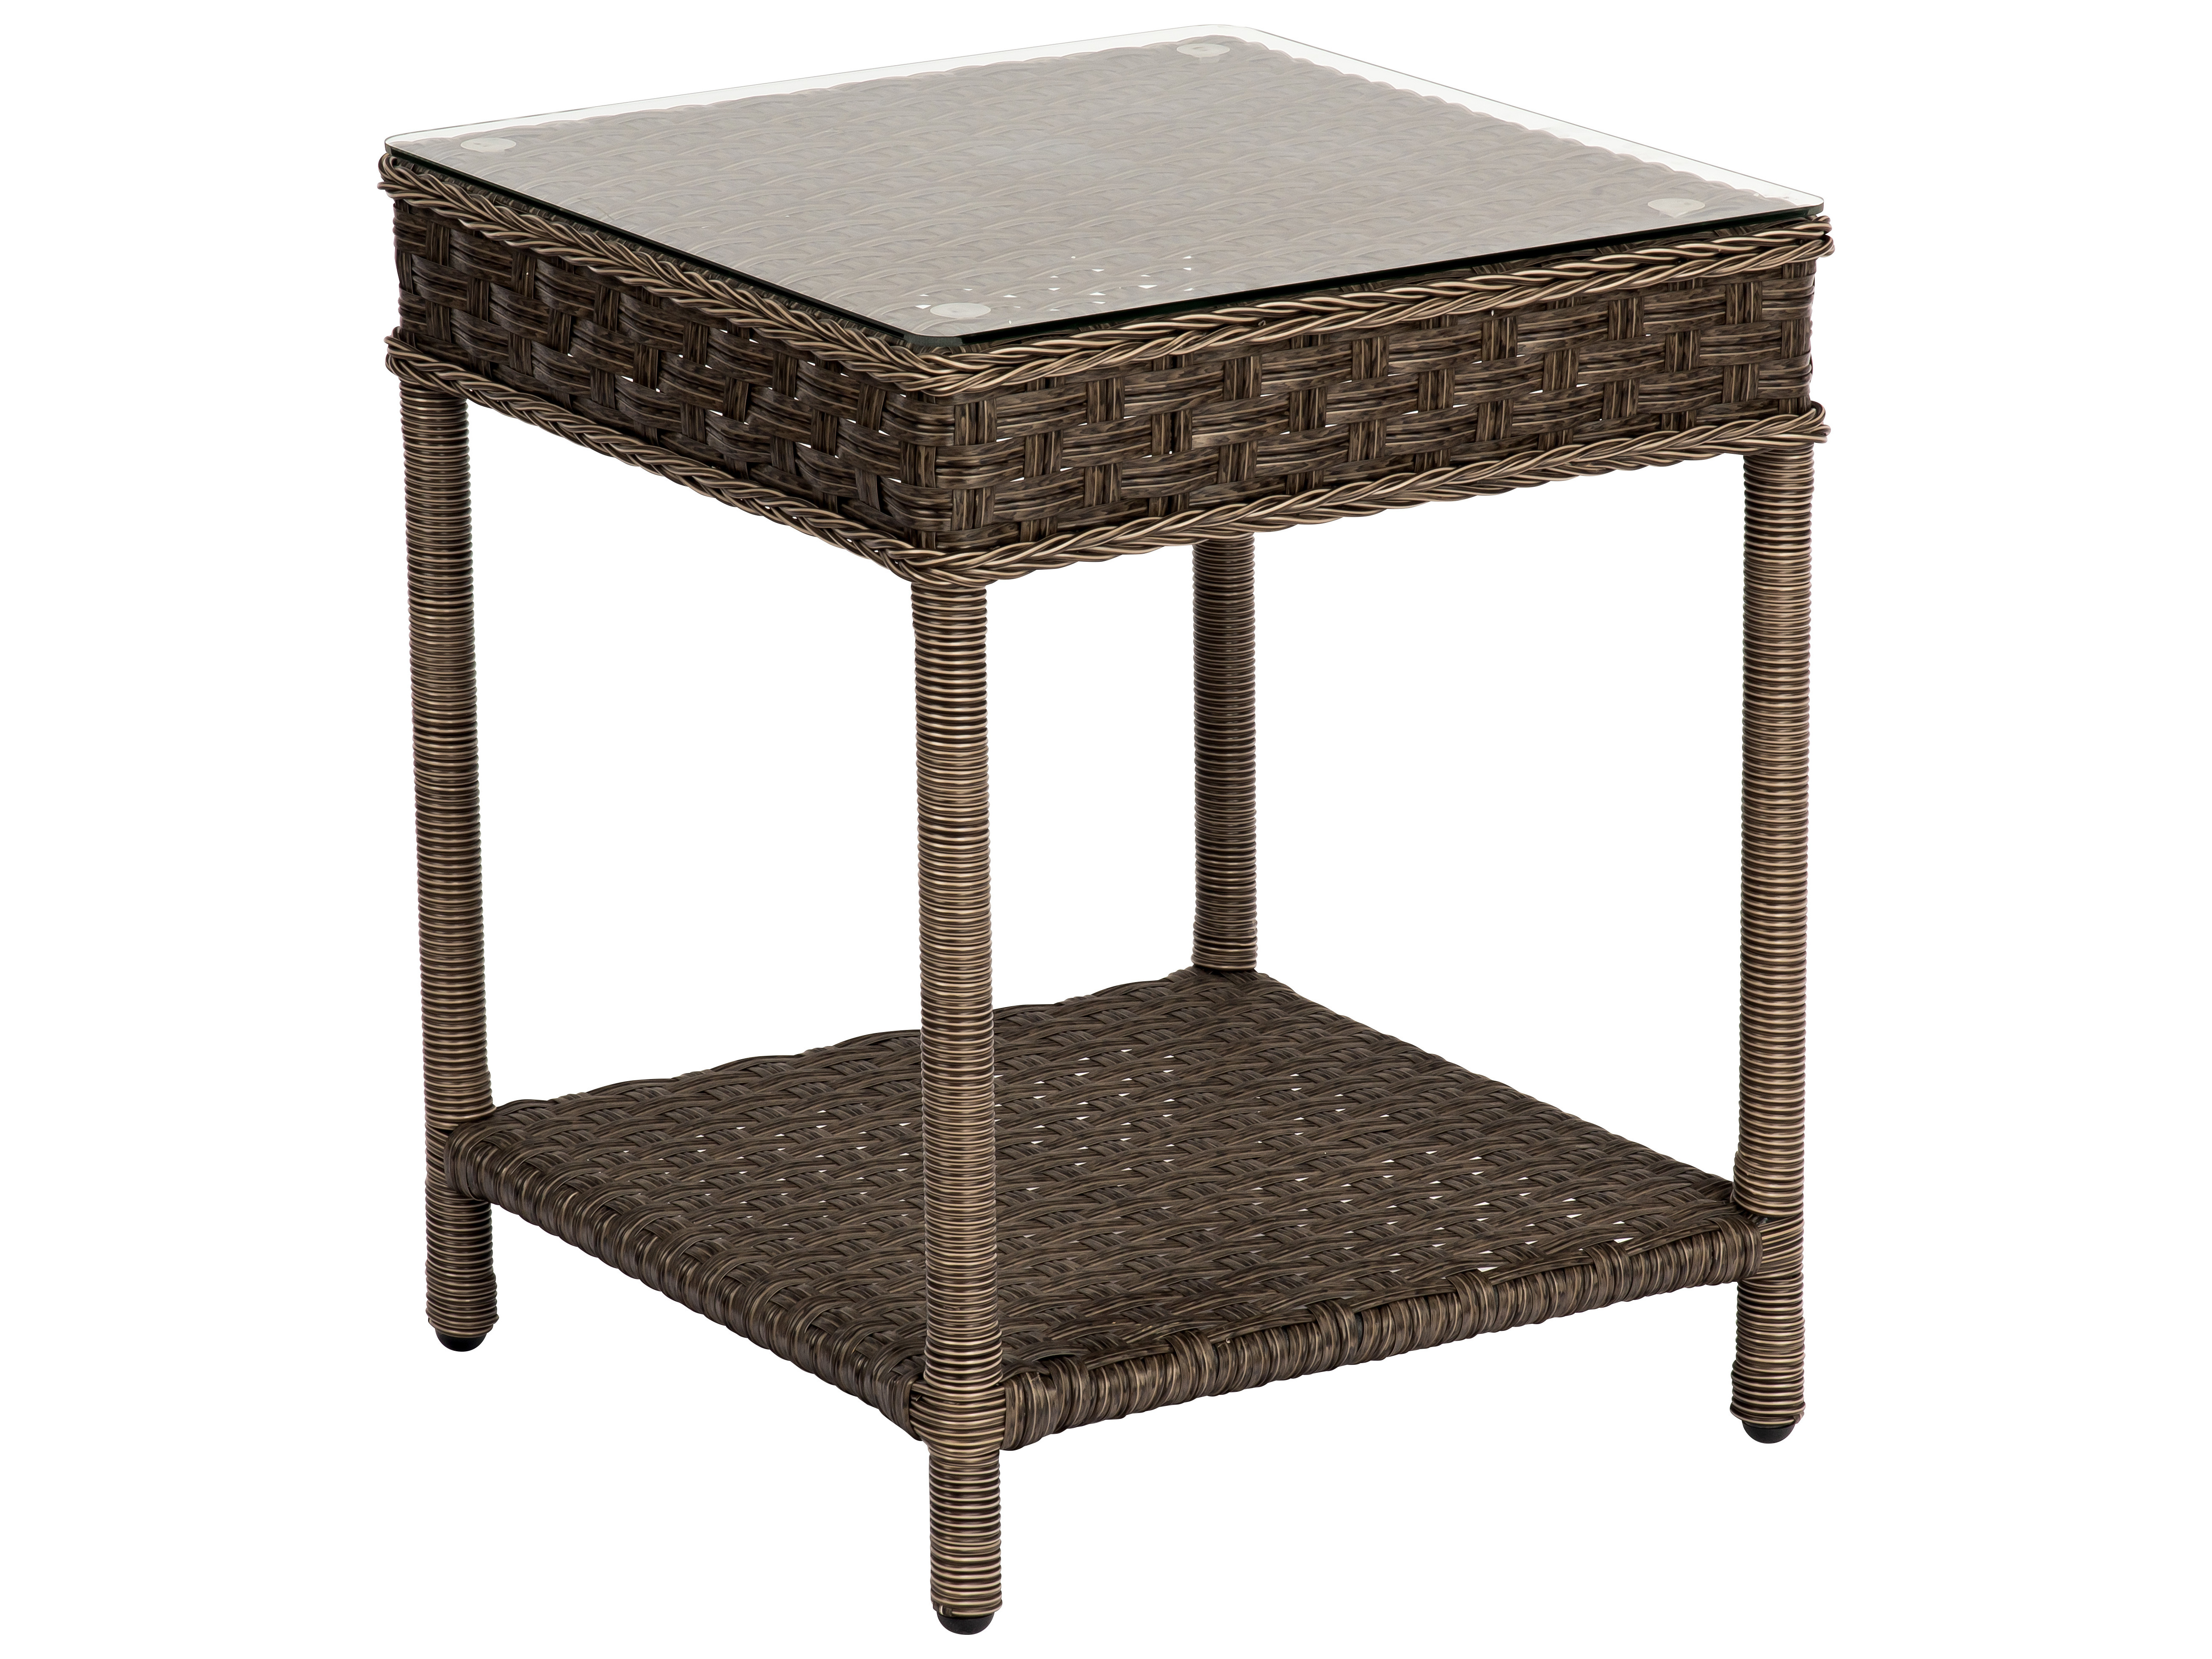 Square Glass End Tables Woodard Savannah Wicker 20 Square Glass Top End Table